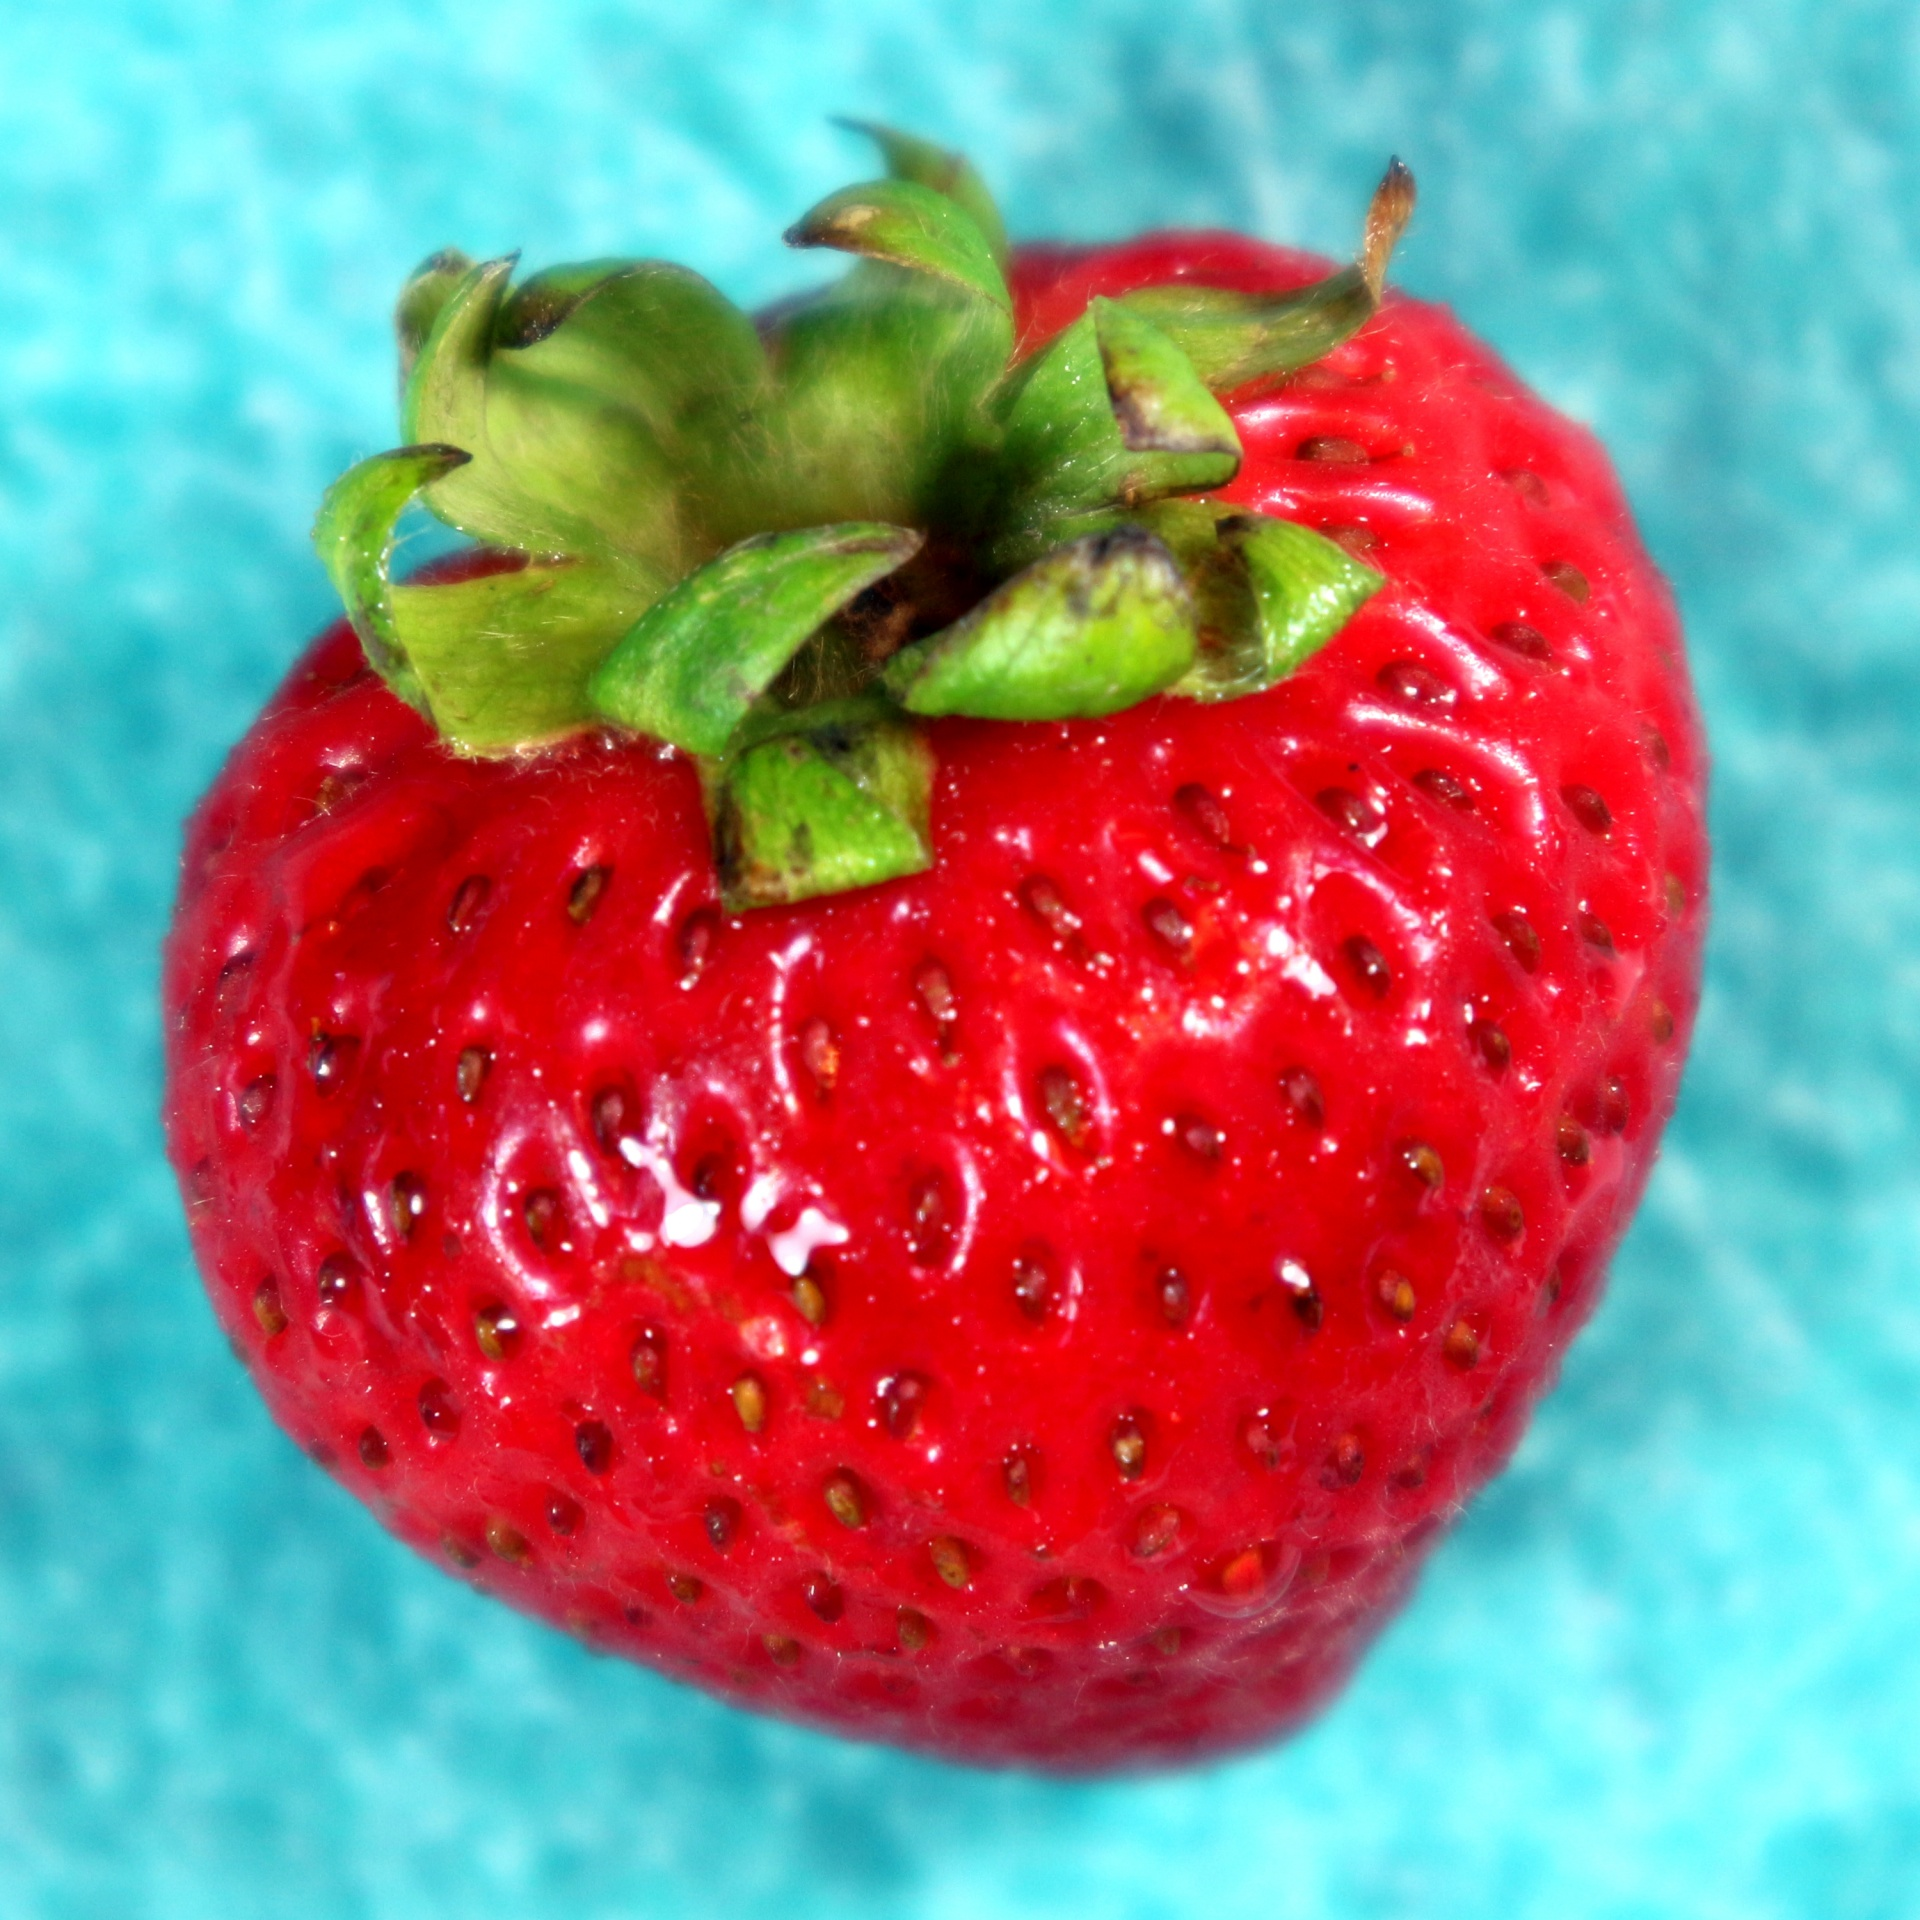 Red Strawberry Free Stock Photo - Public Domain Pictures